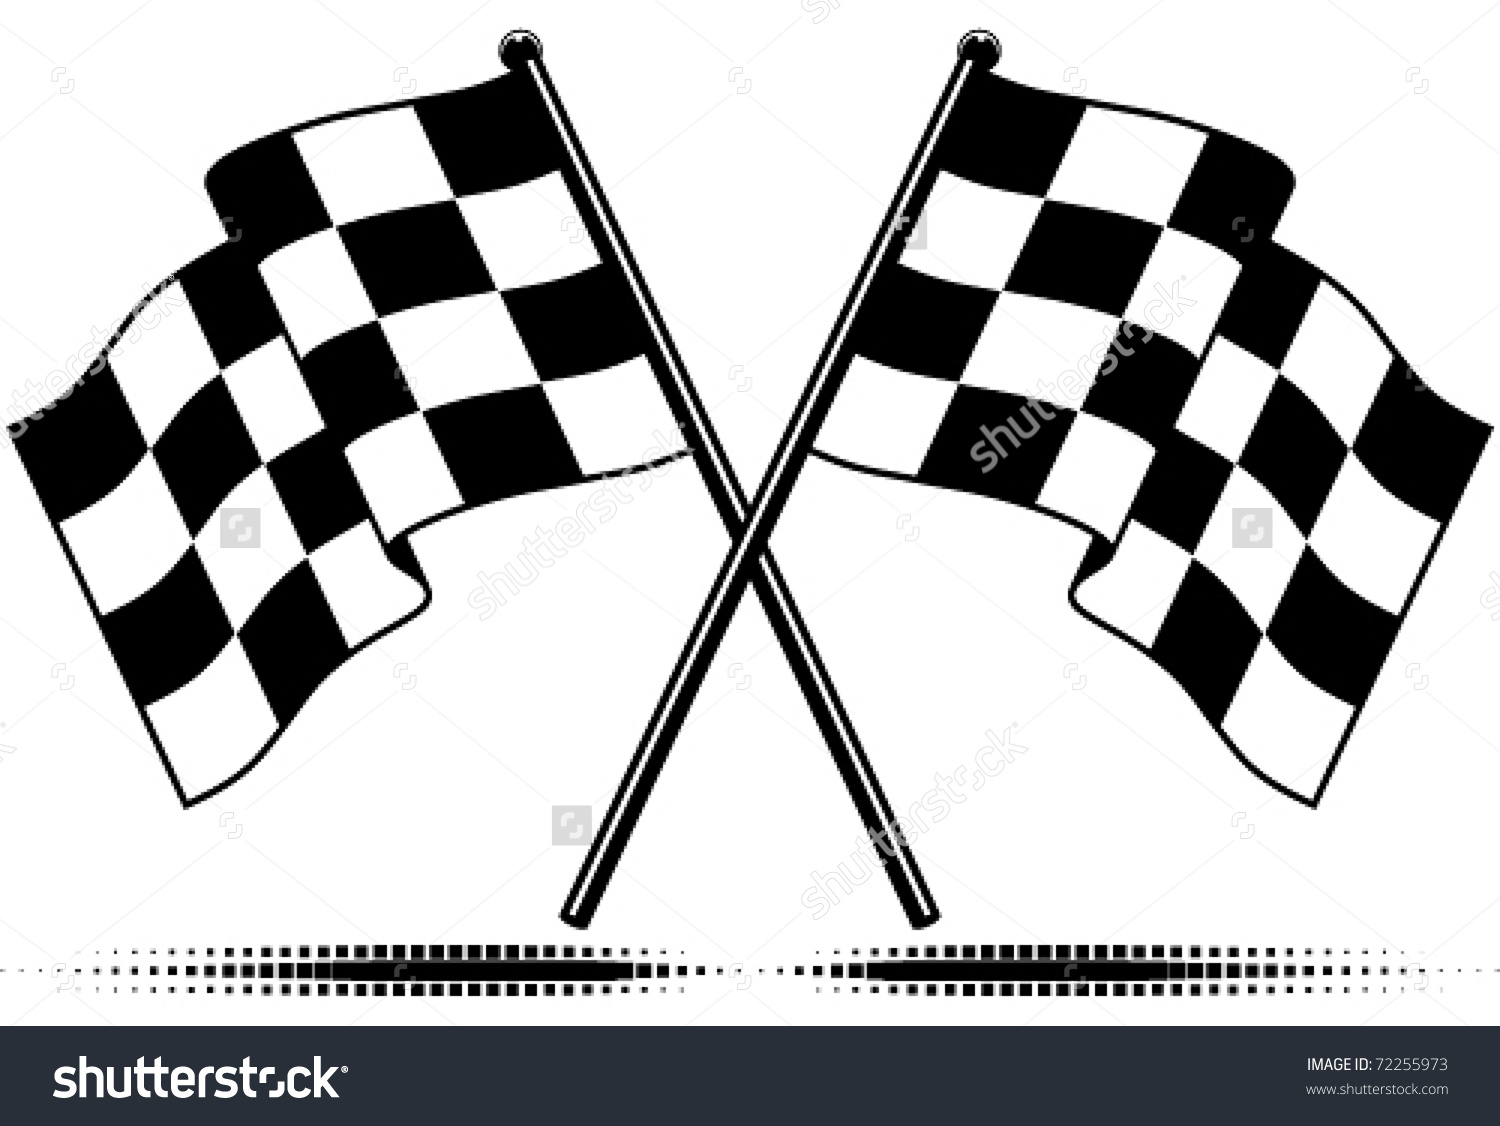 Vector Two Crossed Checkered Flags Black Stock Vector 72255973.